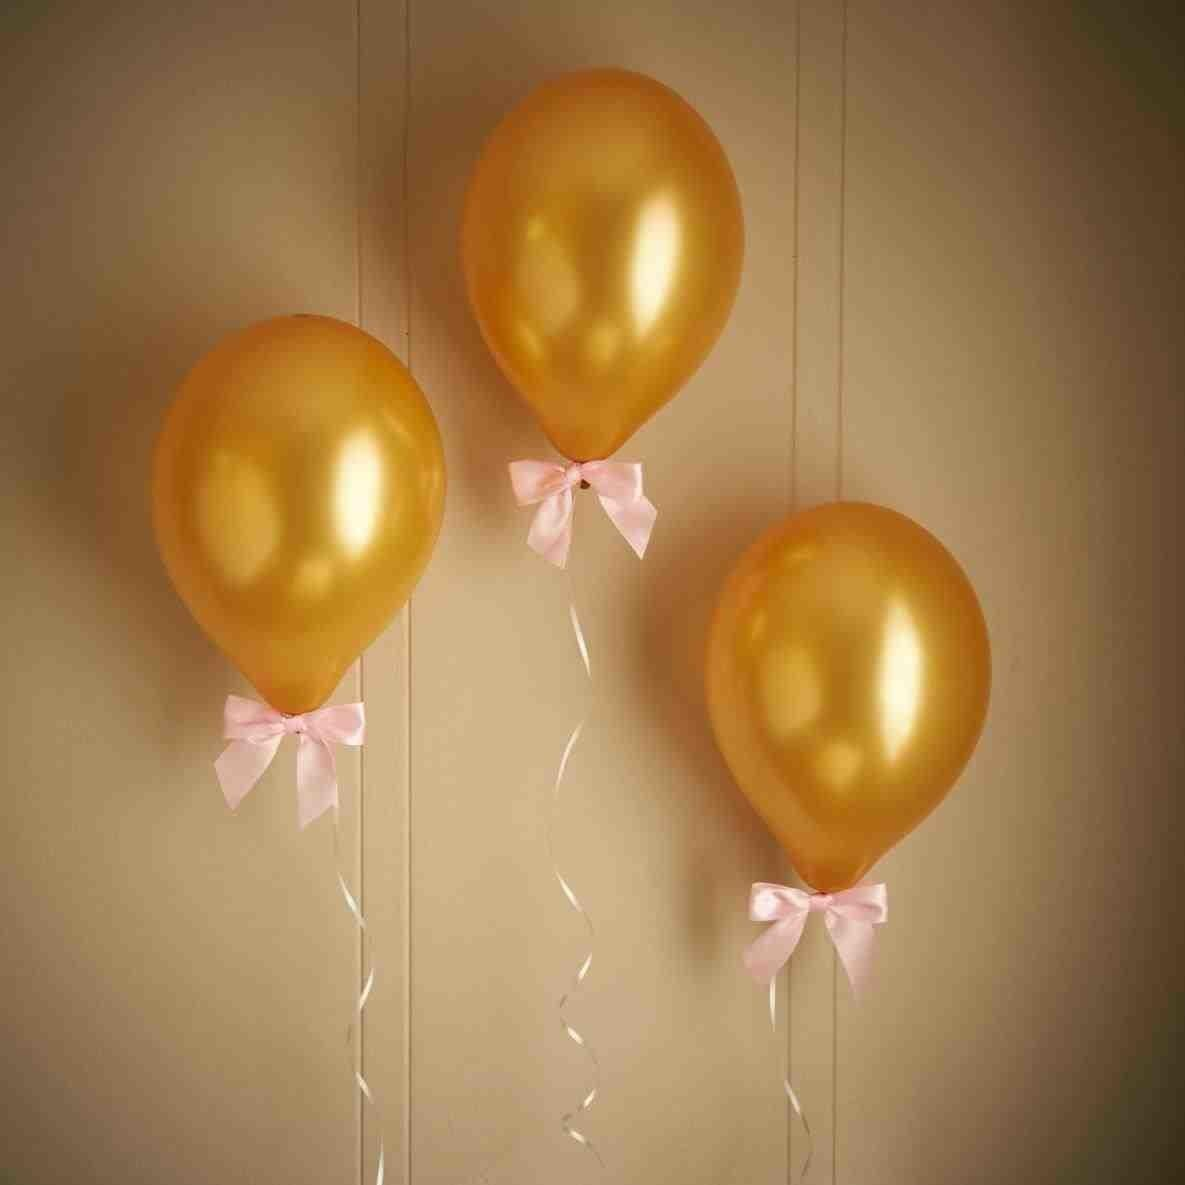 Gold Balloon Decorations Birthday Party